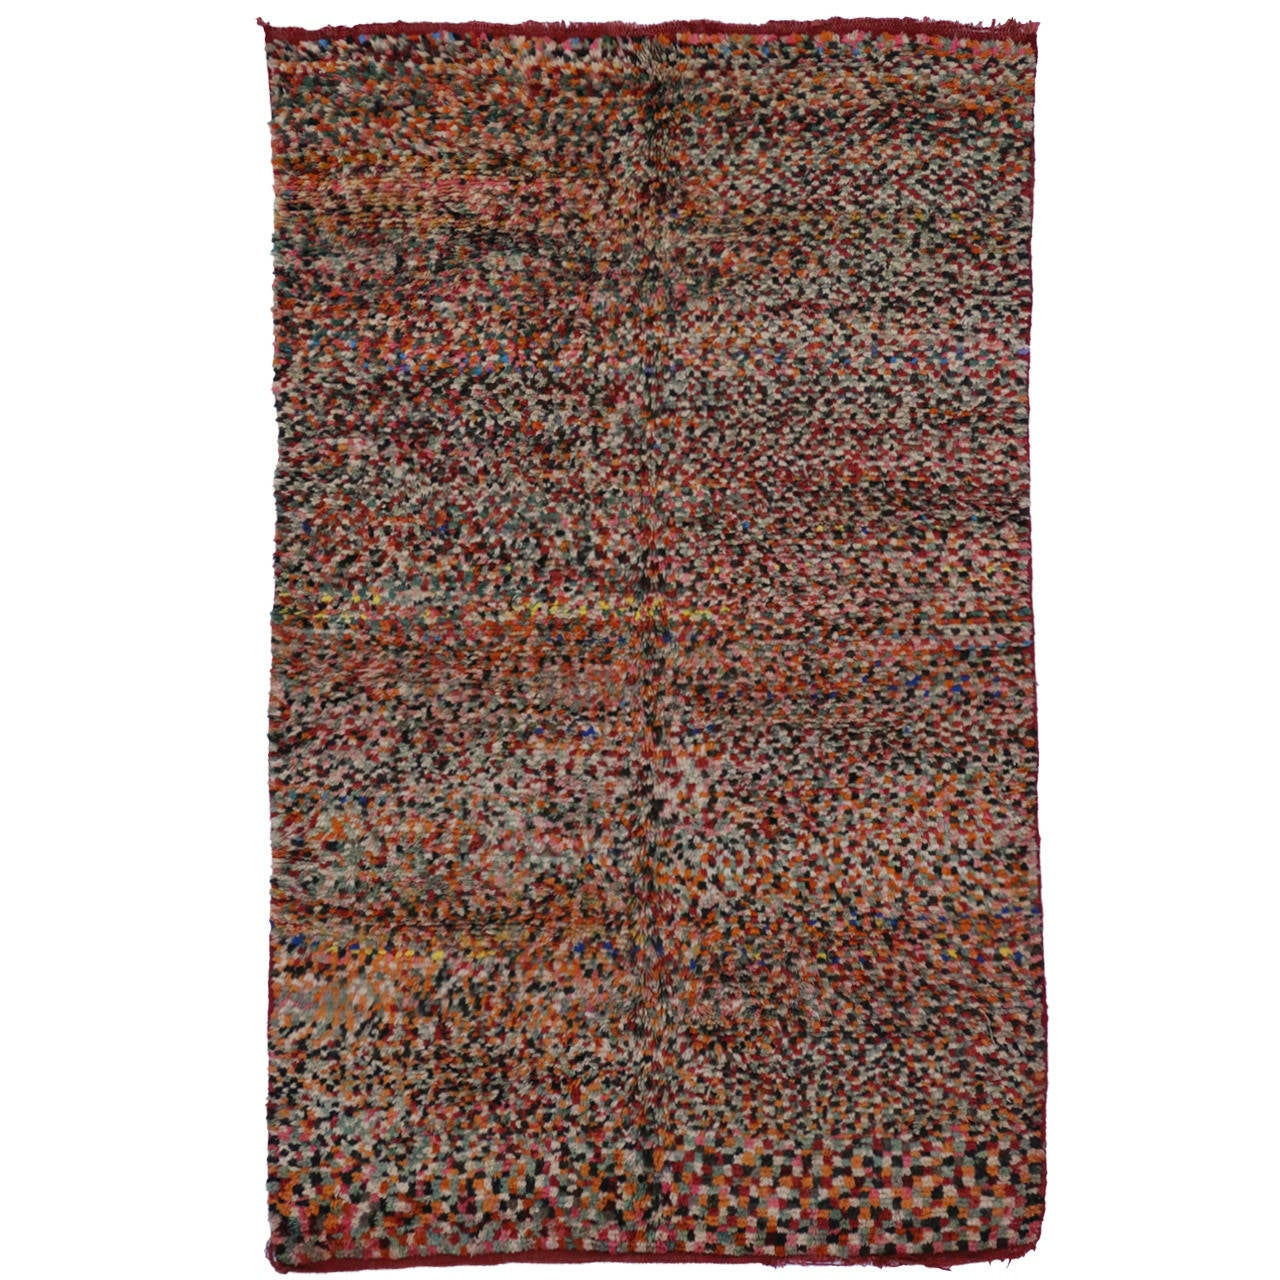 Mid Century Modern Rugs: Mid-Century Modern Berber Moroccan Rug At 1stdibs